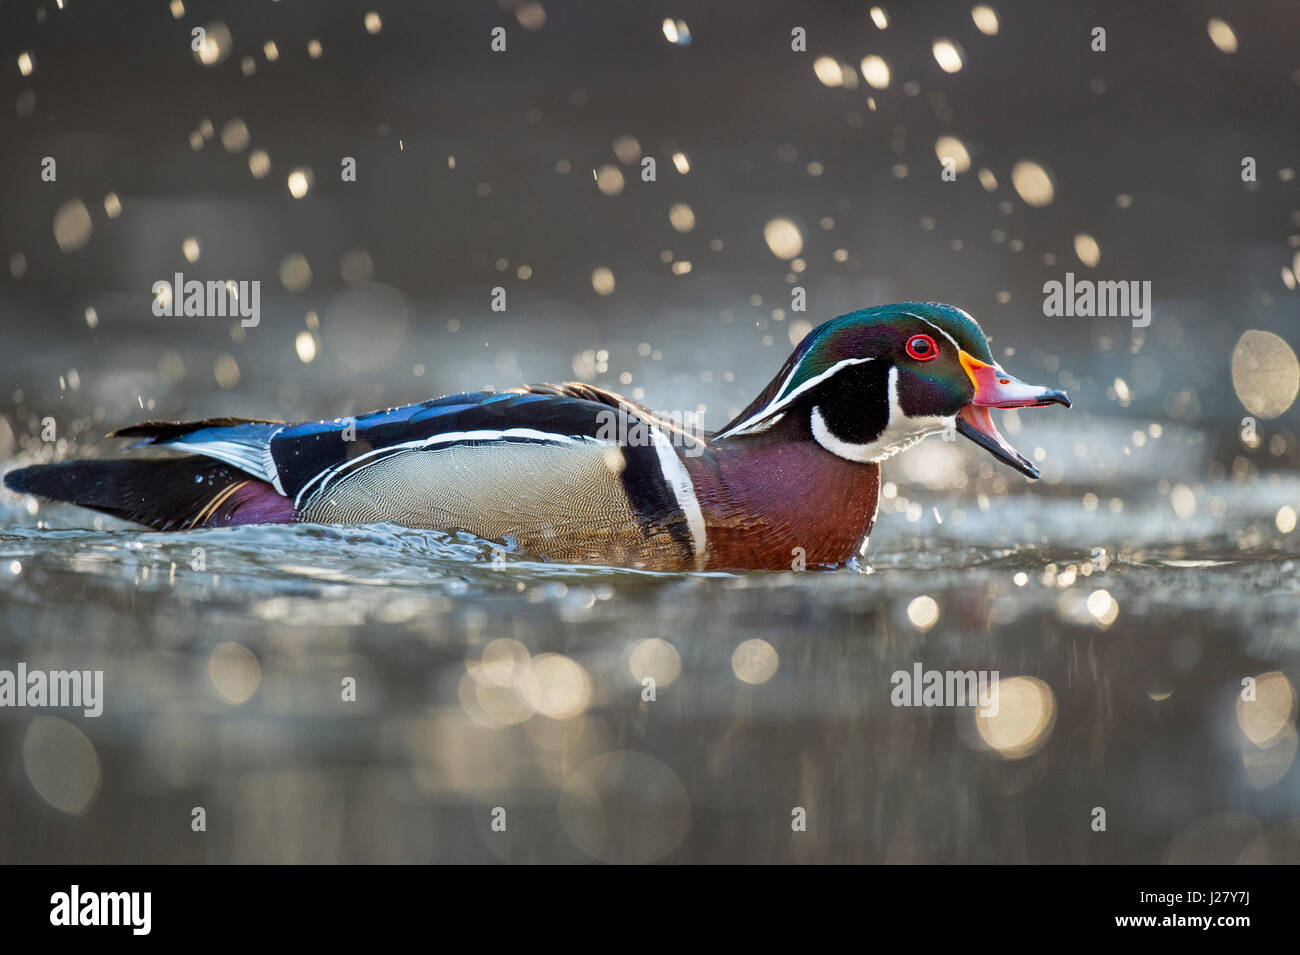 A male Wood Duck calls out with his beak open as a splash of water drops are glowing in the morning sun around him - Stock Image